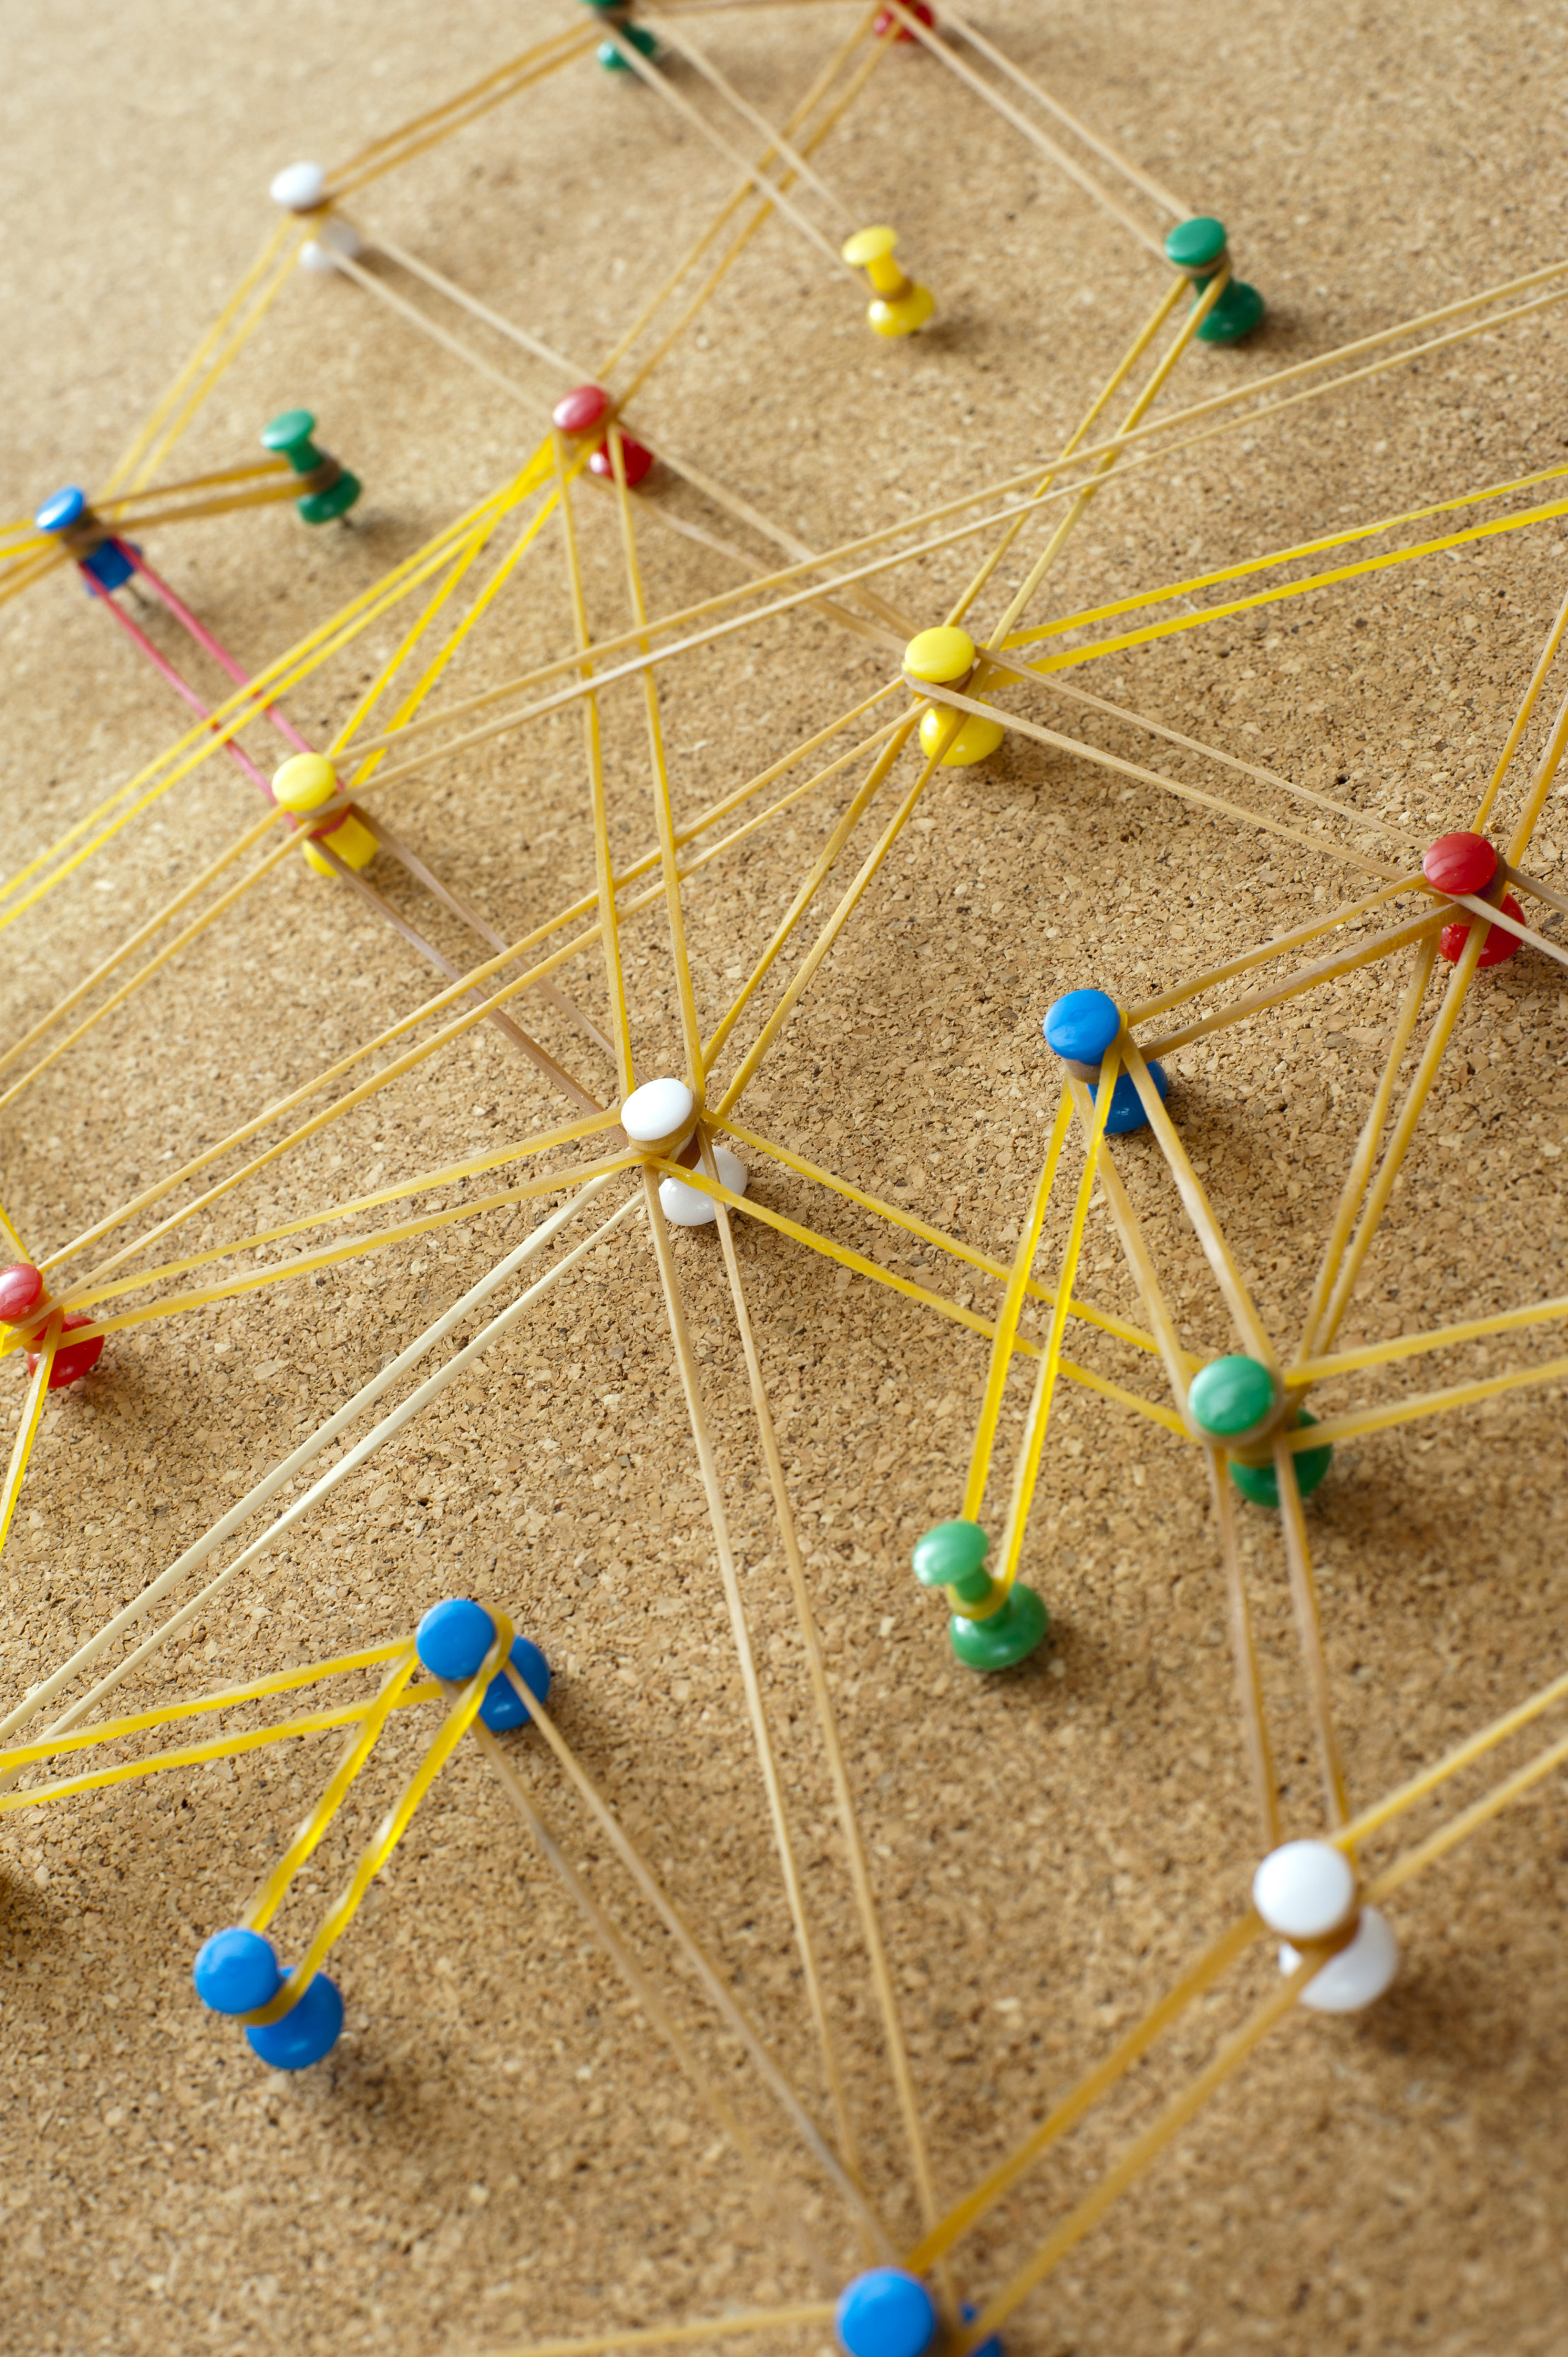 Networking concept formed from rubber bands connecting bright colorful pins on a cork board